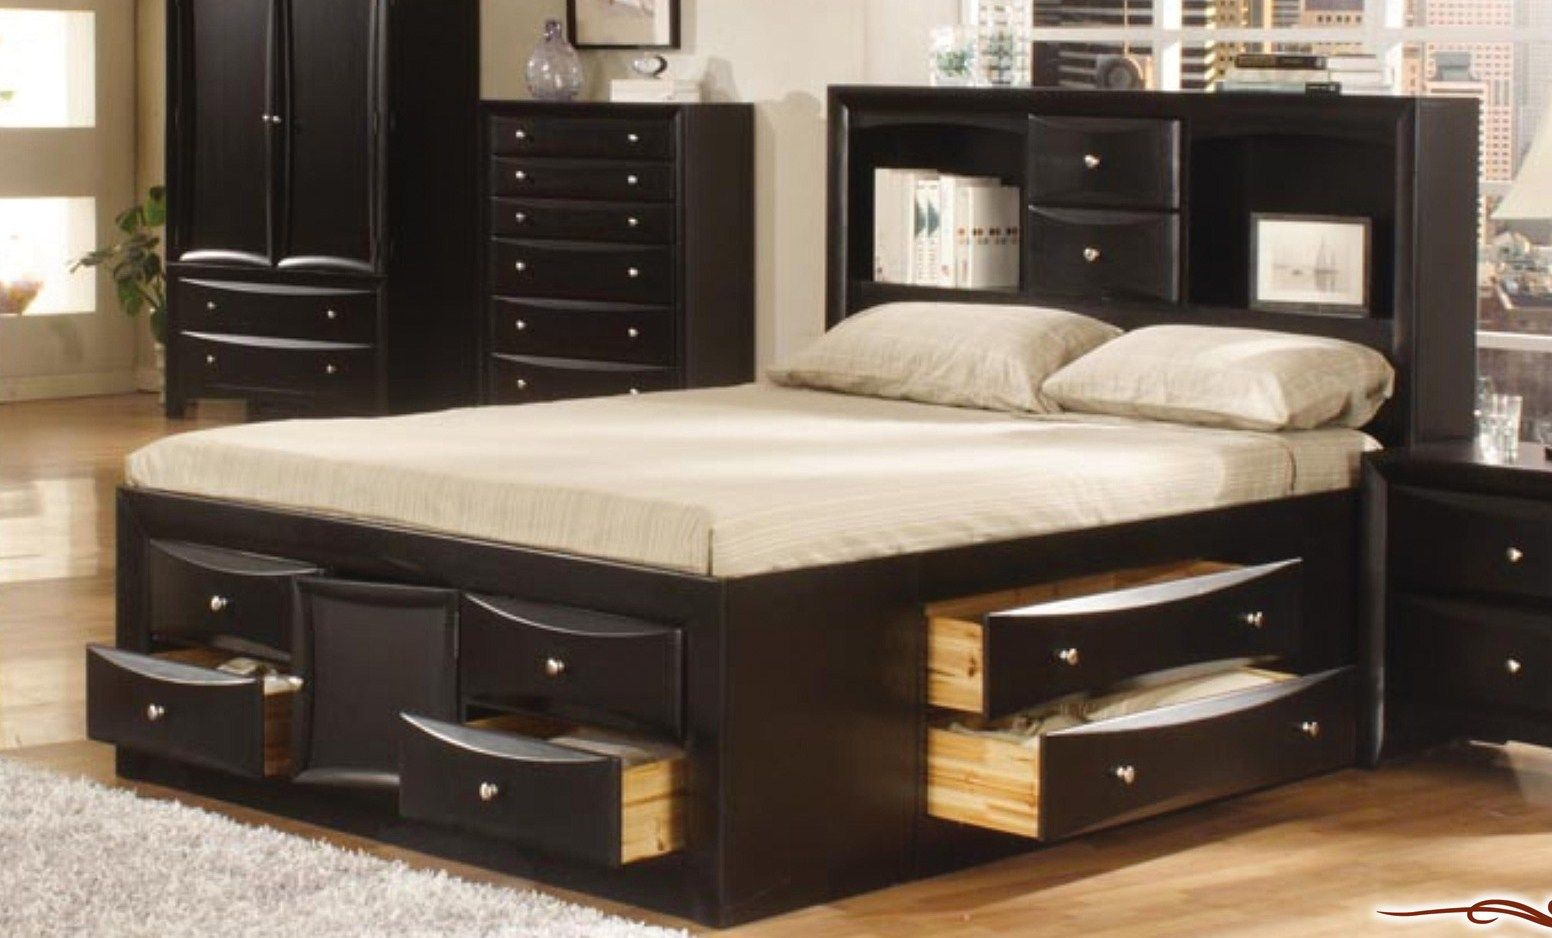 Bedroom Sets With Storage Beds king size bed with storage |  finished bedroom set with storage